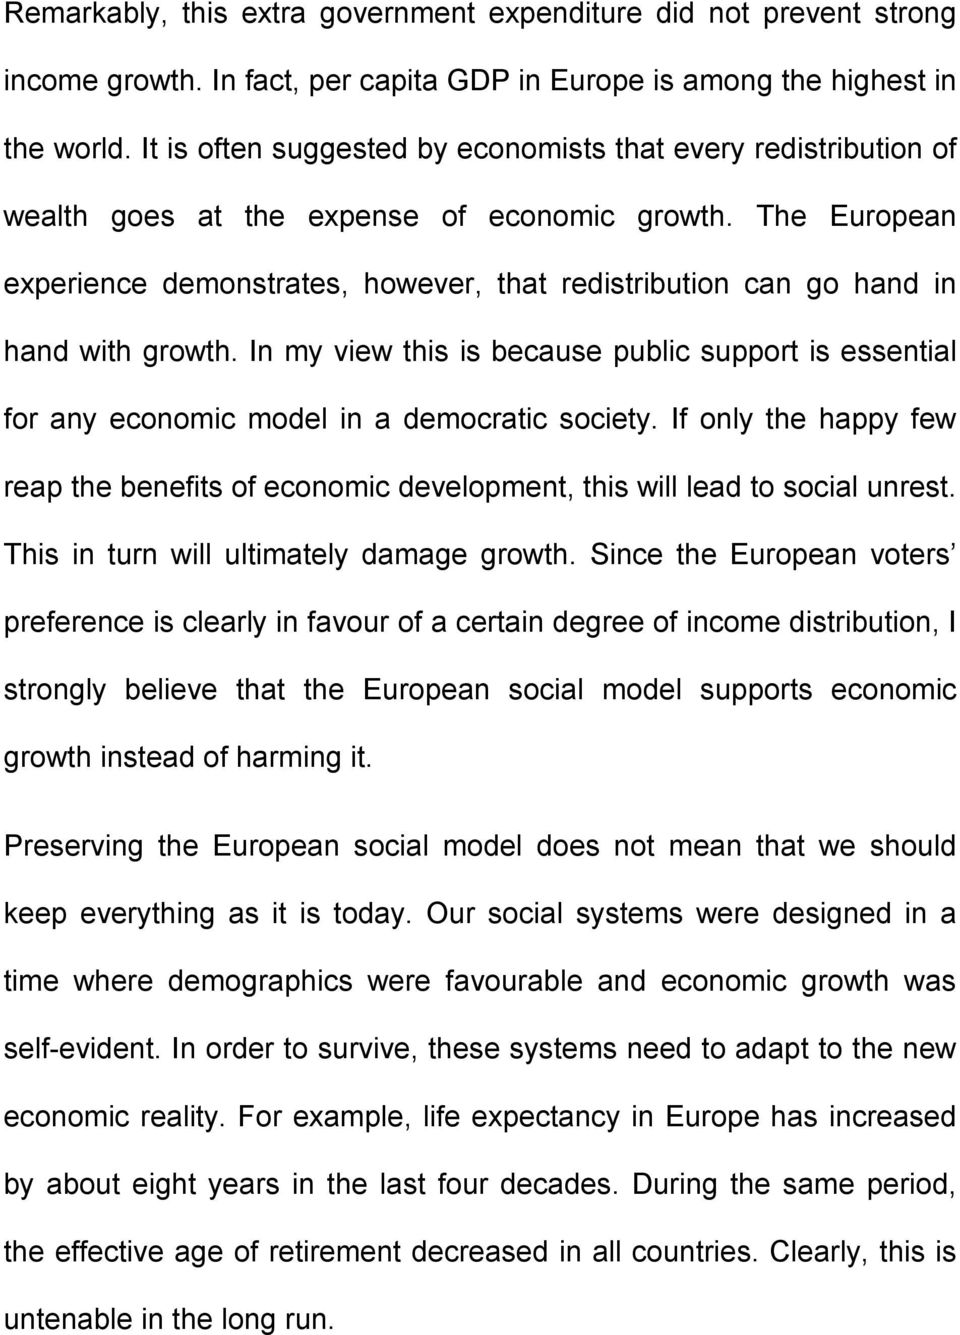 The European experience demonstrates, however, that redistribution can go hand in hand with growth.